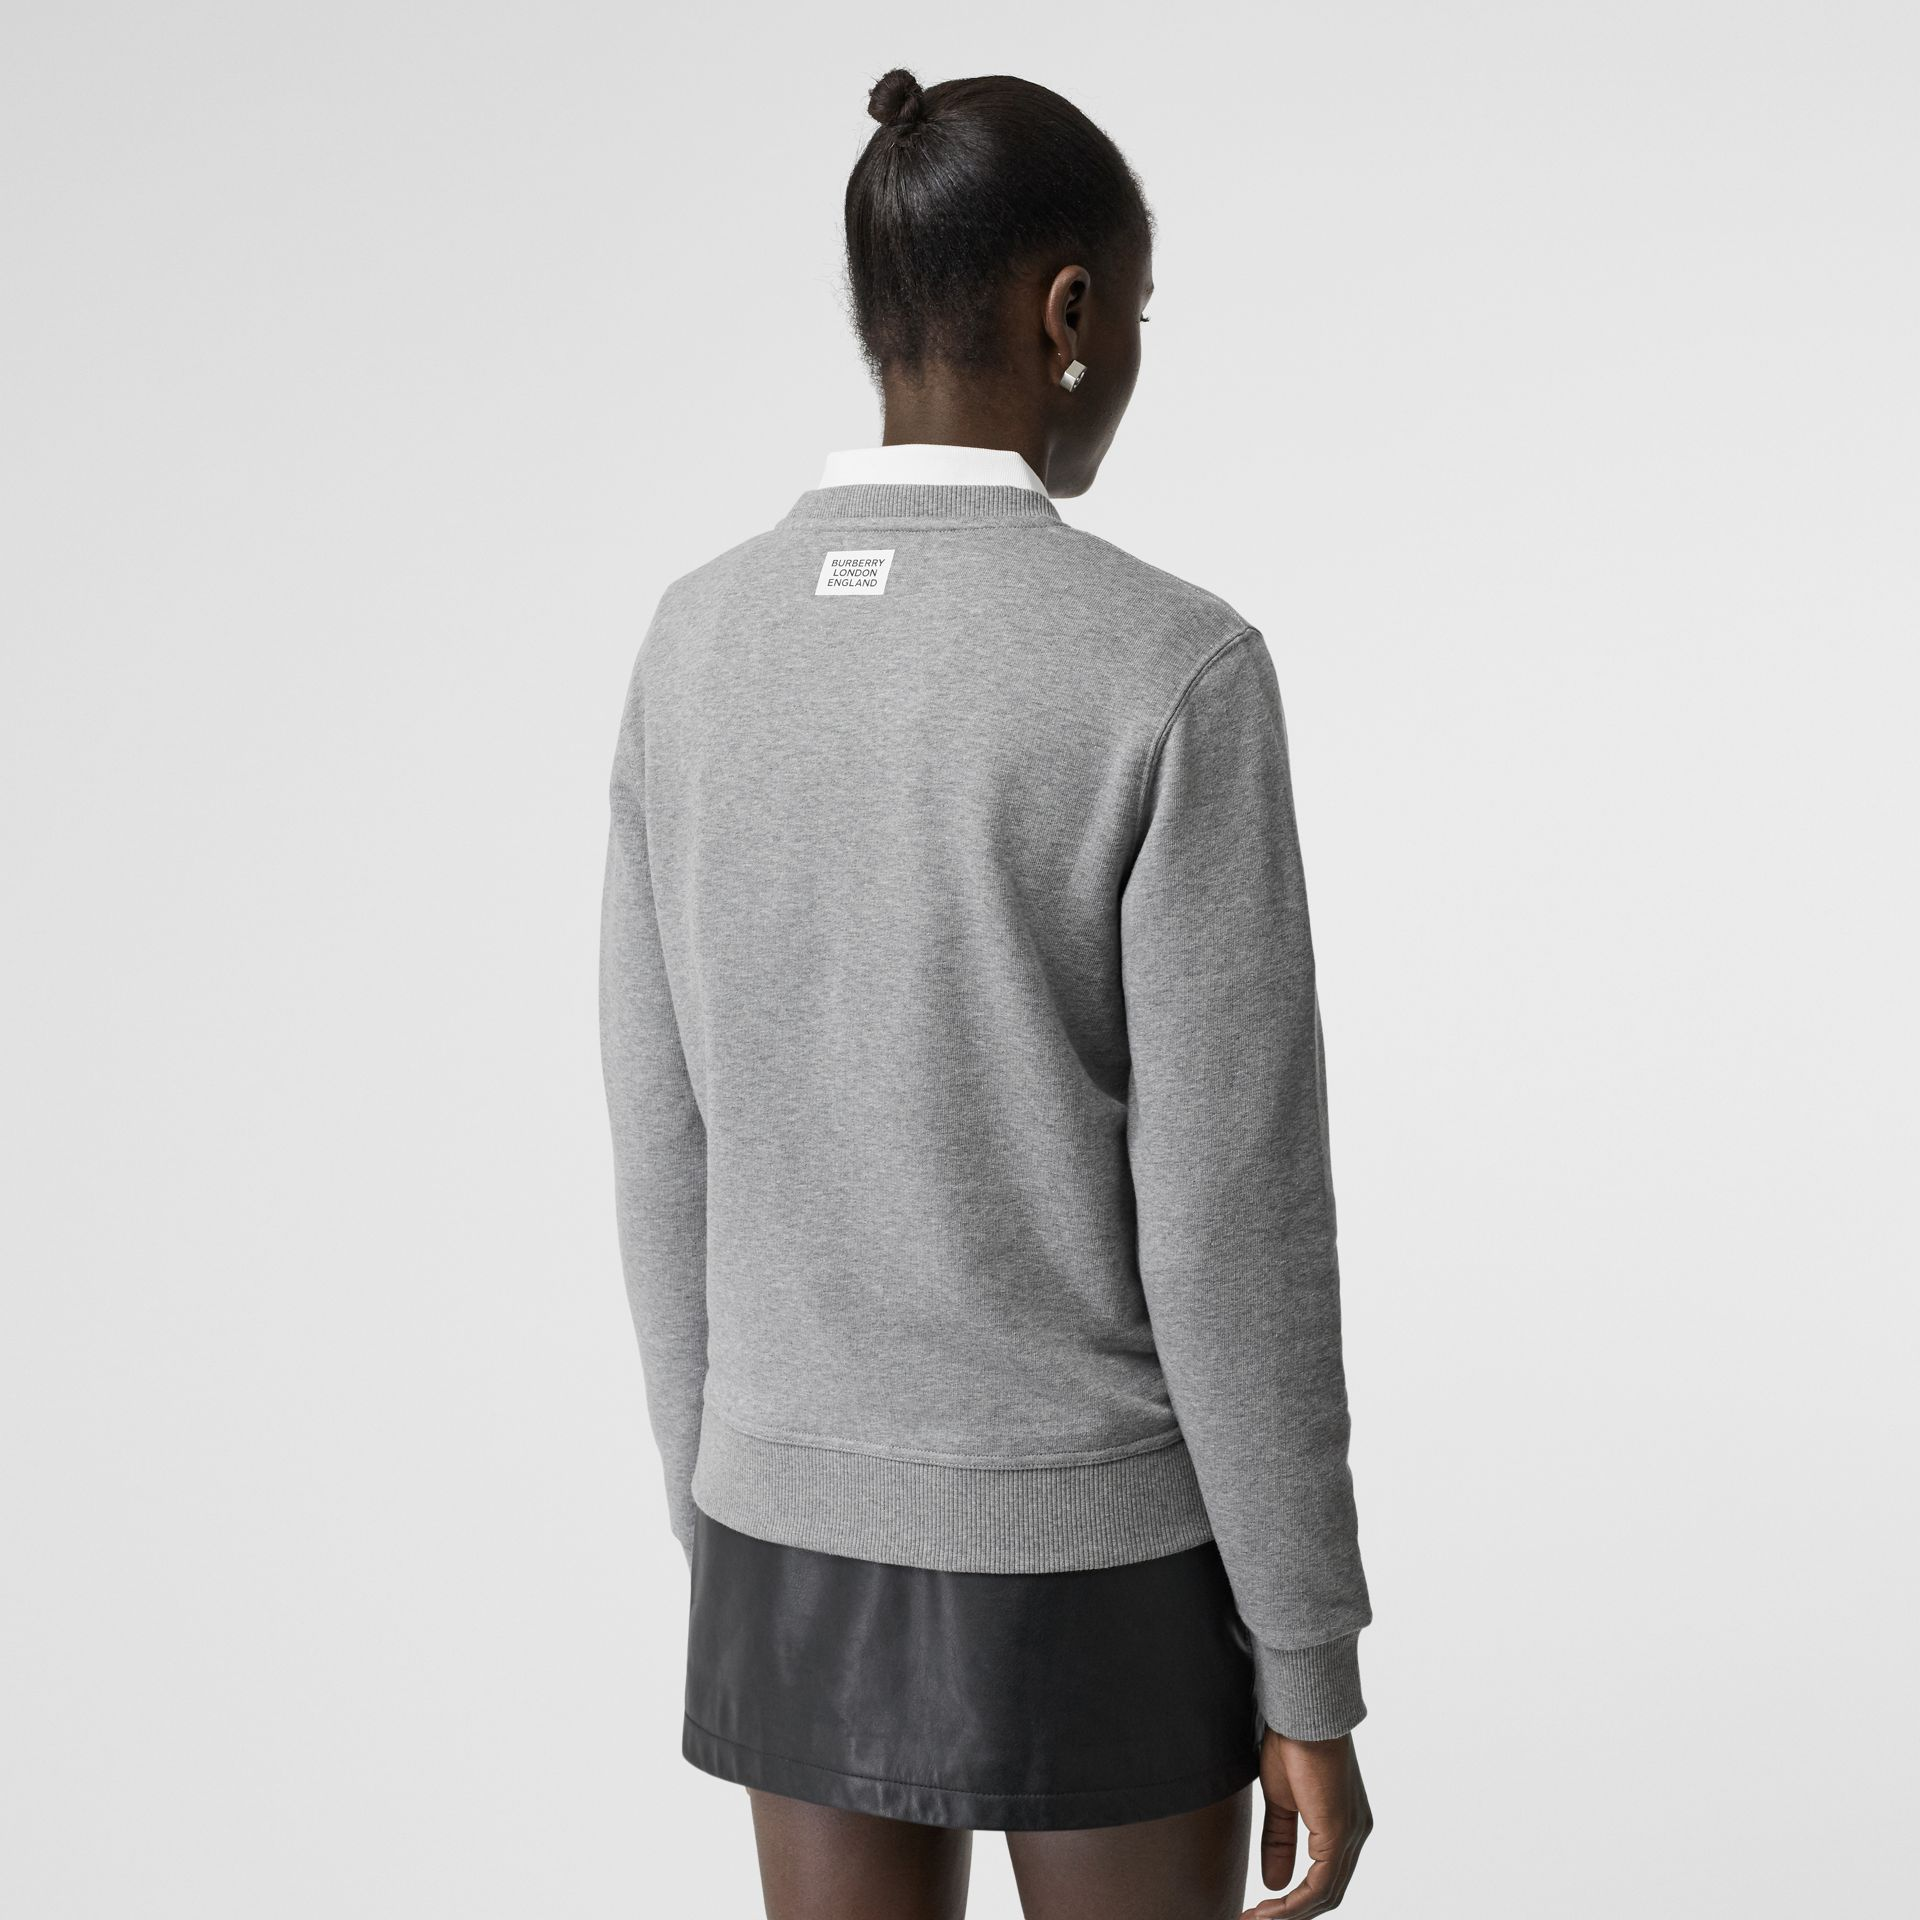 Sweat-shirt en coton avec citation (Camaïeu De Gris Pâles) - Femme | Burberry - photo de la galerie 2